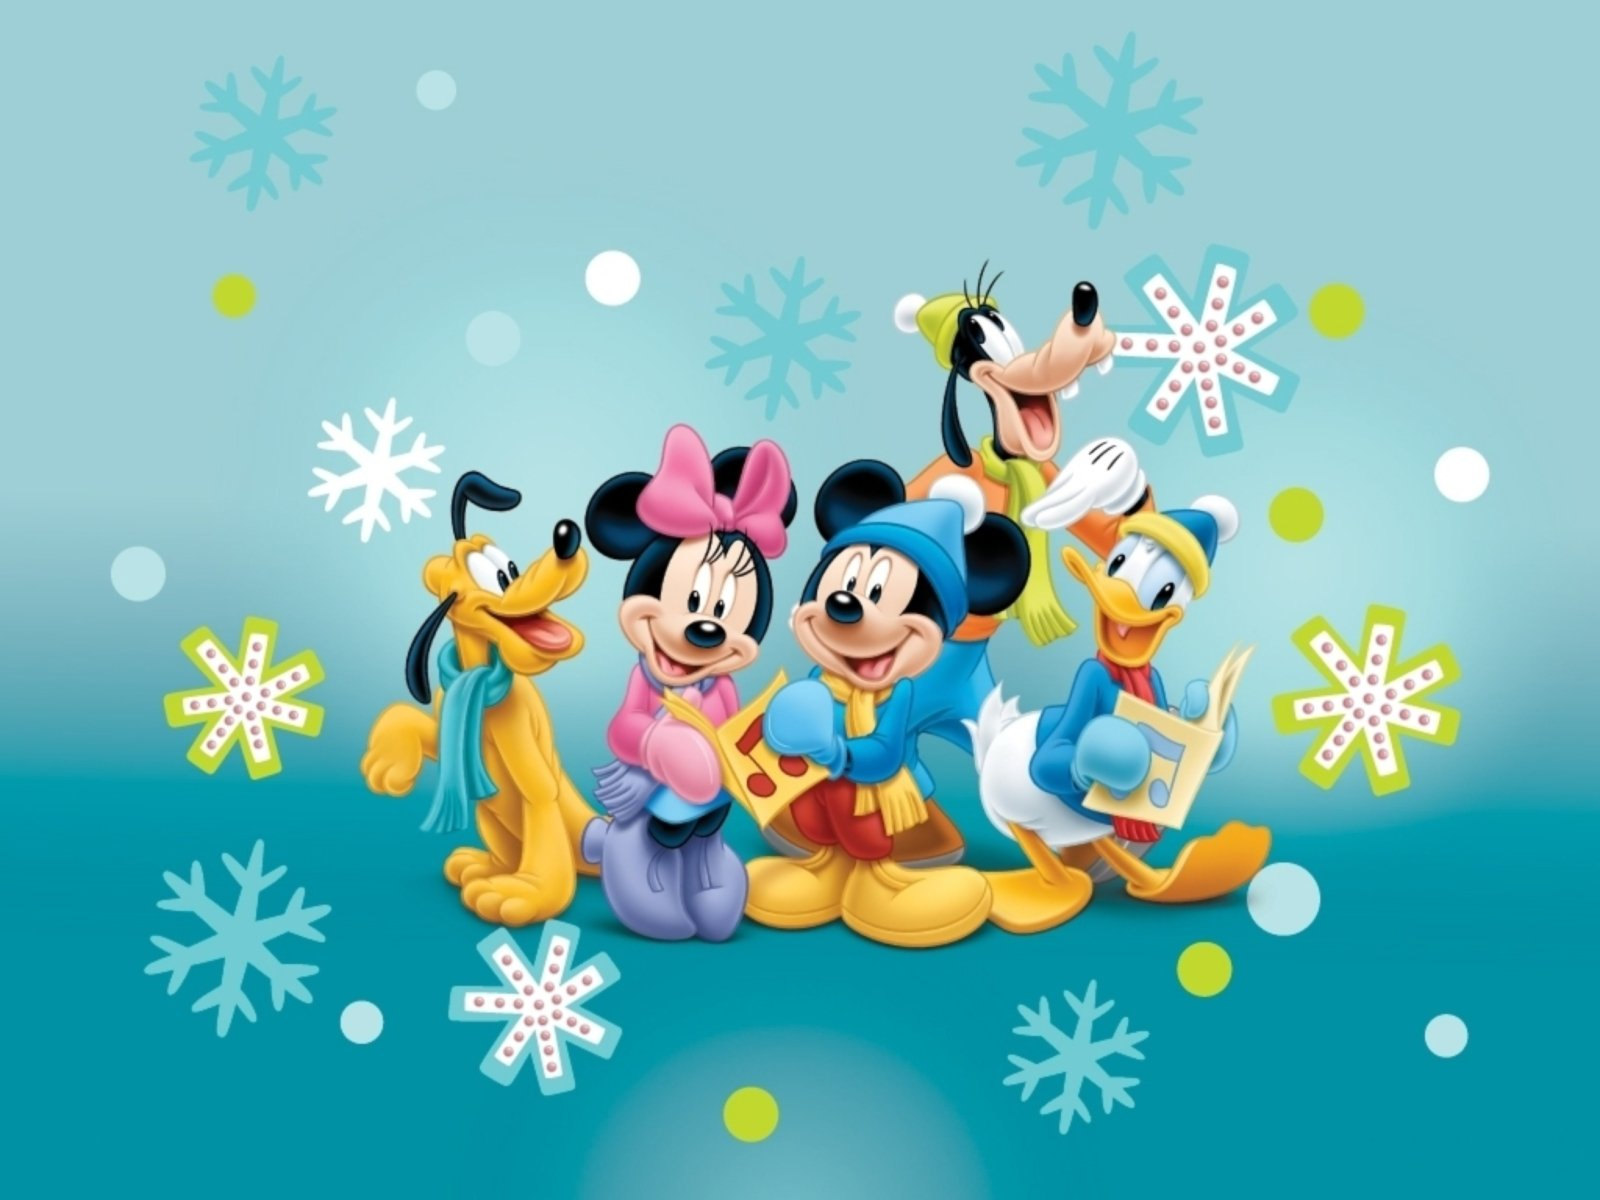 download Disney Desktop Backgrounds Pictures [1600x1200] for 1600x1200